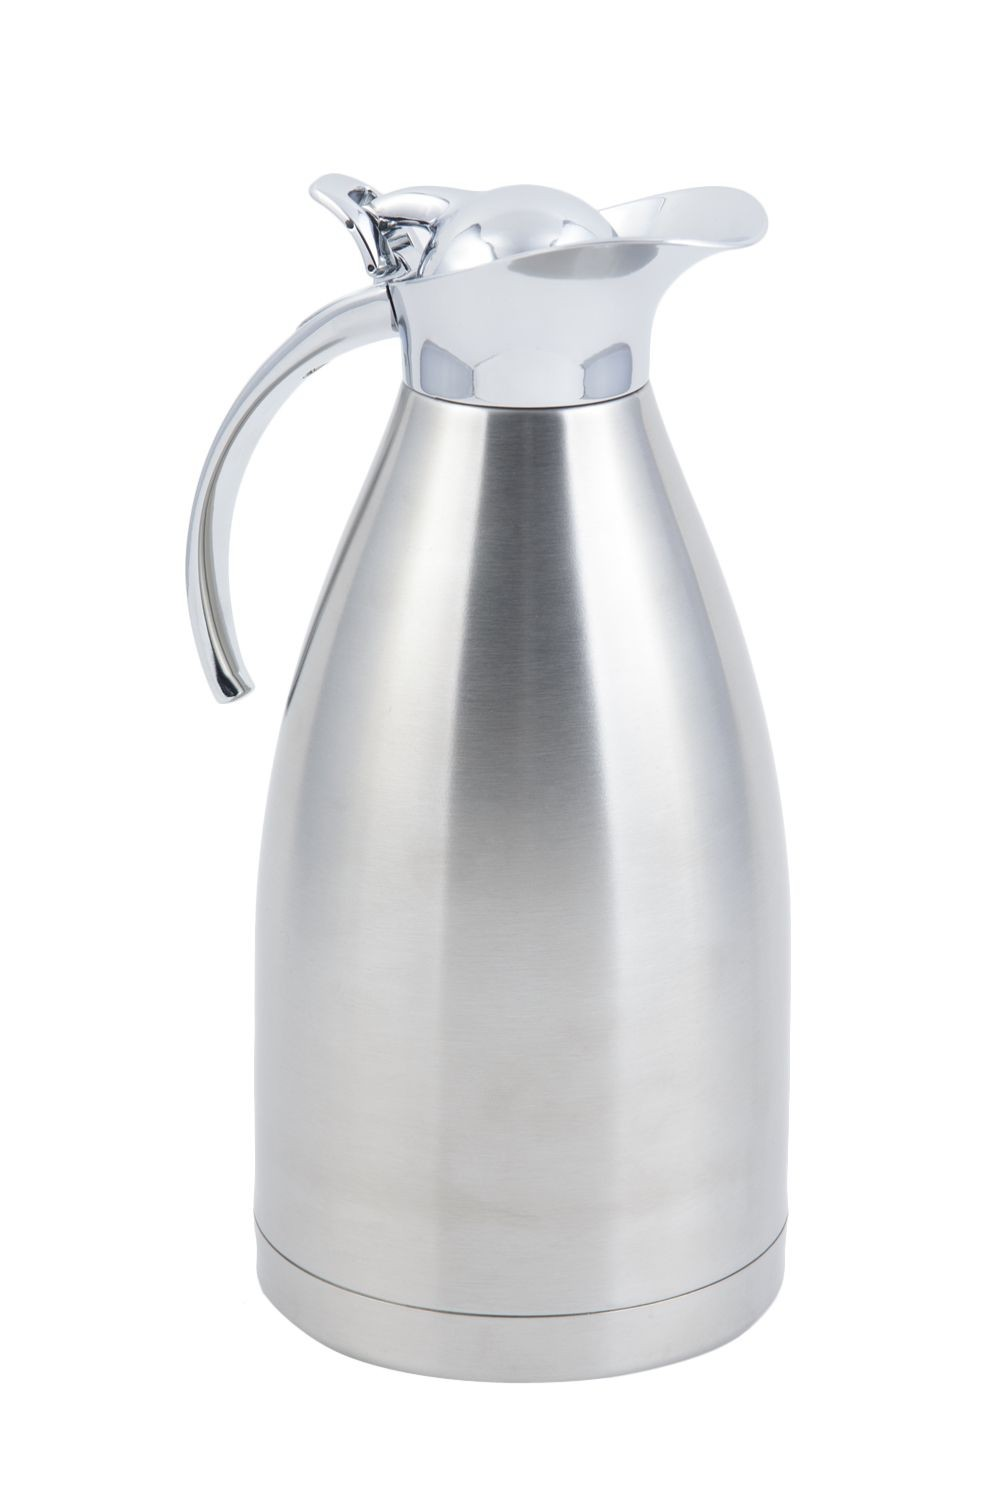 Bon Chef 4057S Stainless Steel Insulated Server with Satin Finish, 64 oz., Set of 6